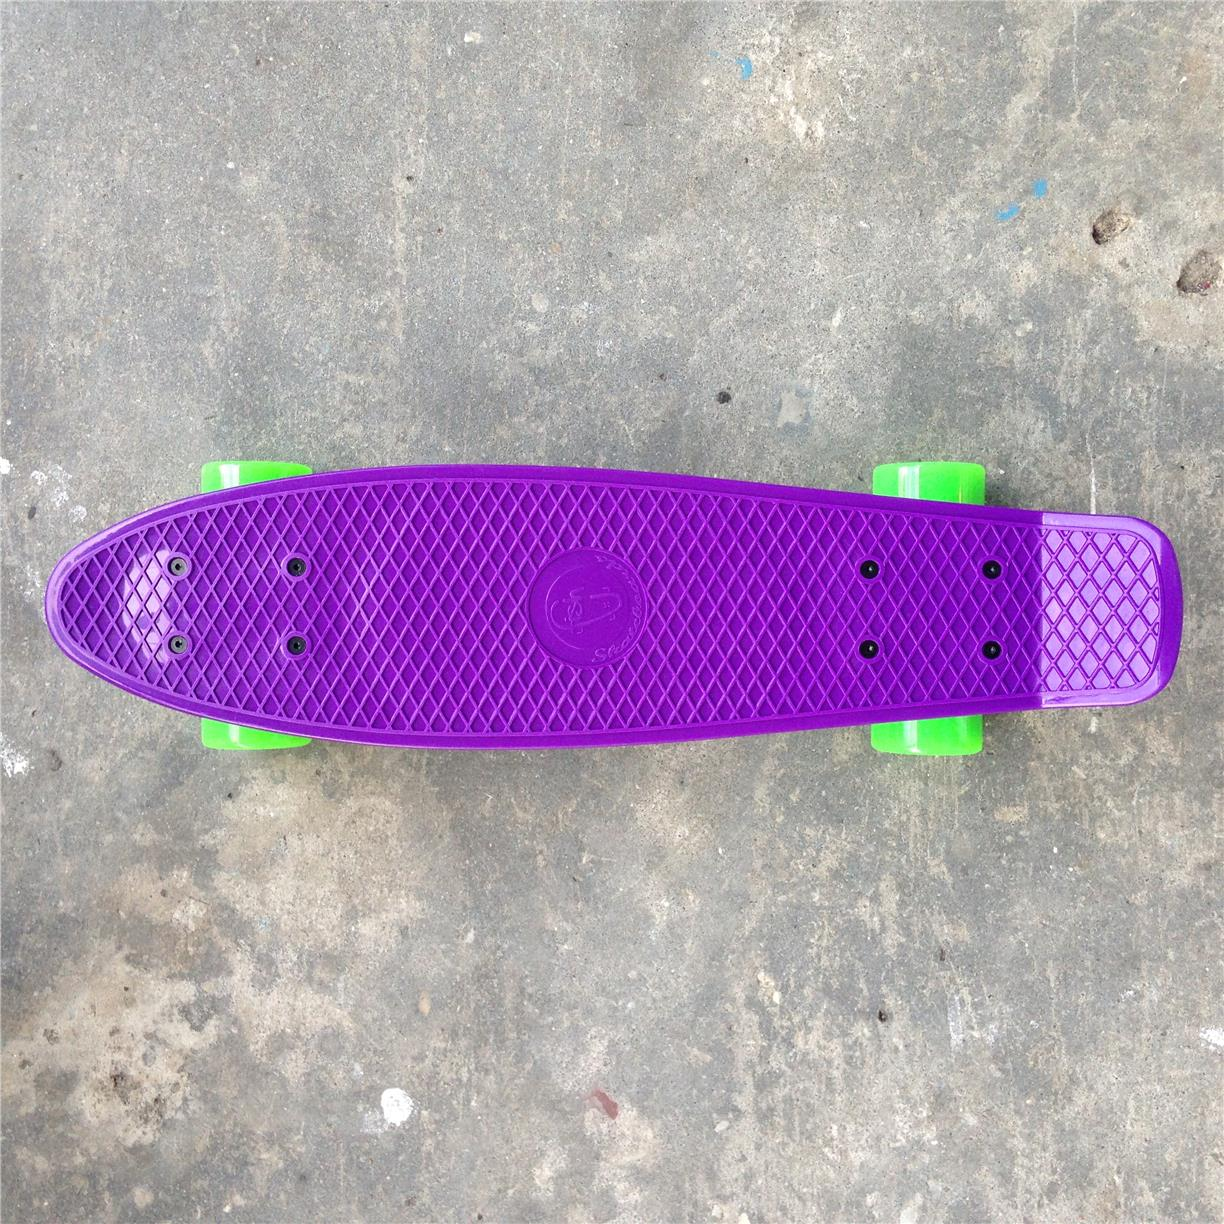 Fish 22 Penny Cruiser Skateboard Purple Green